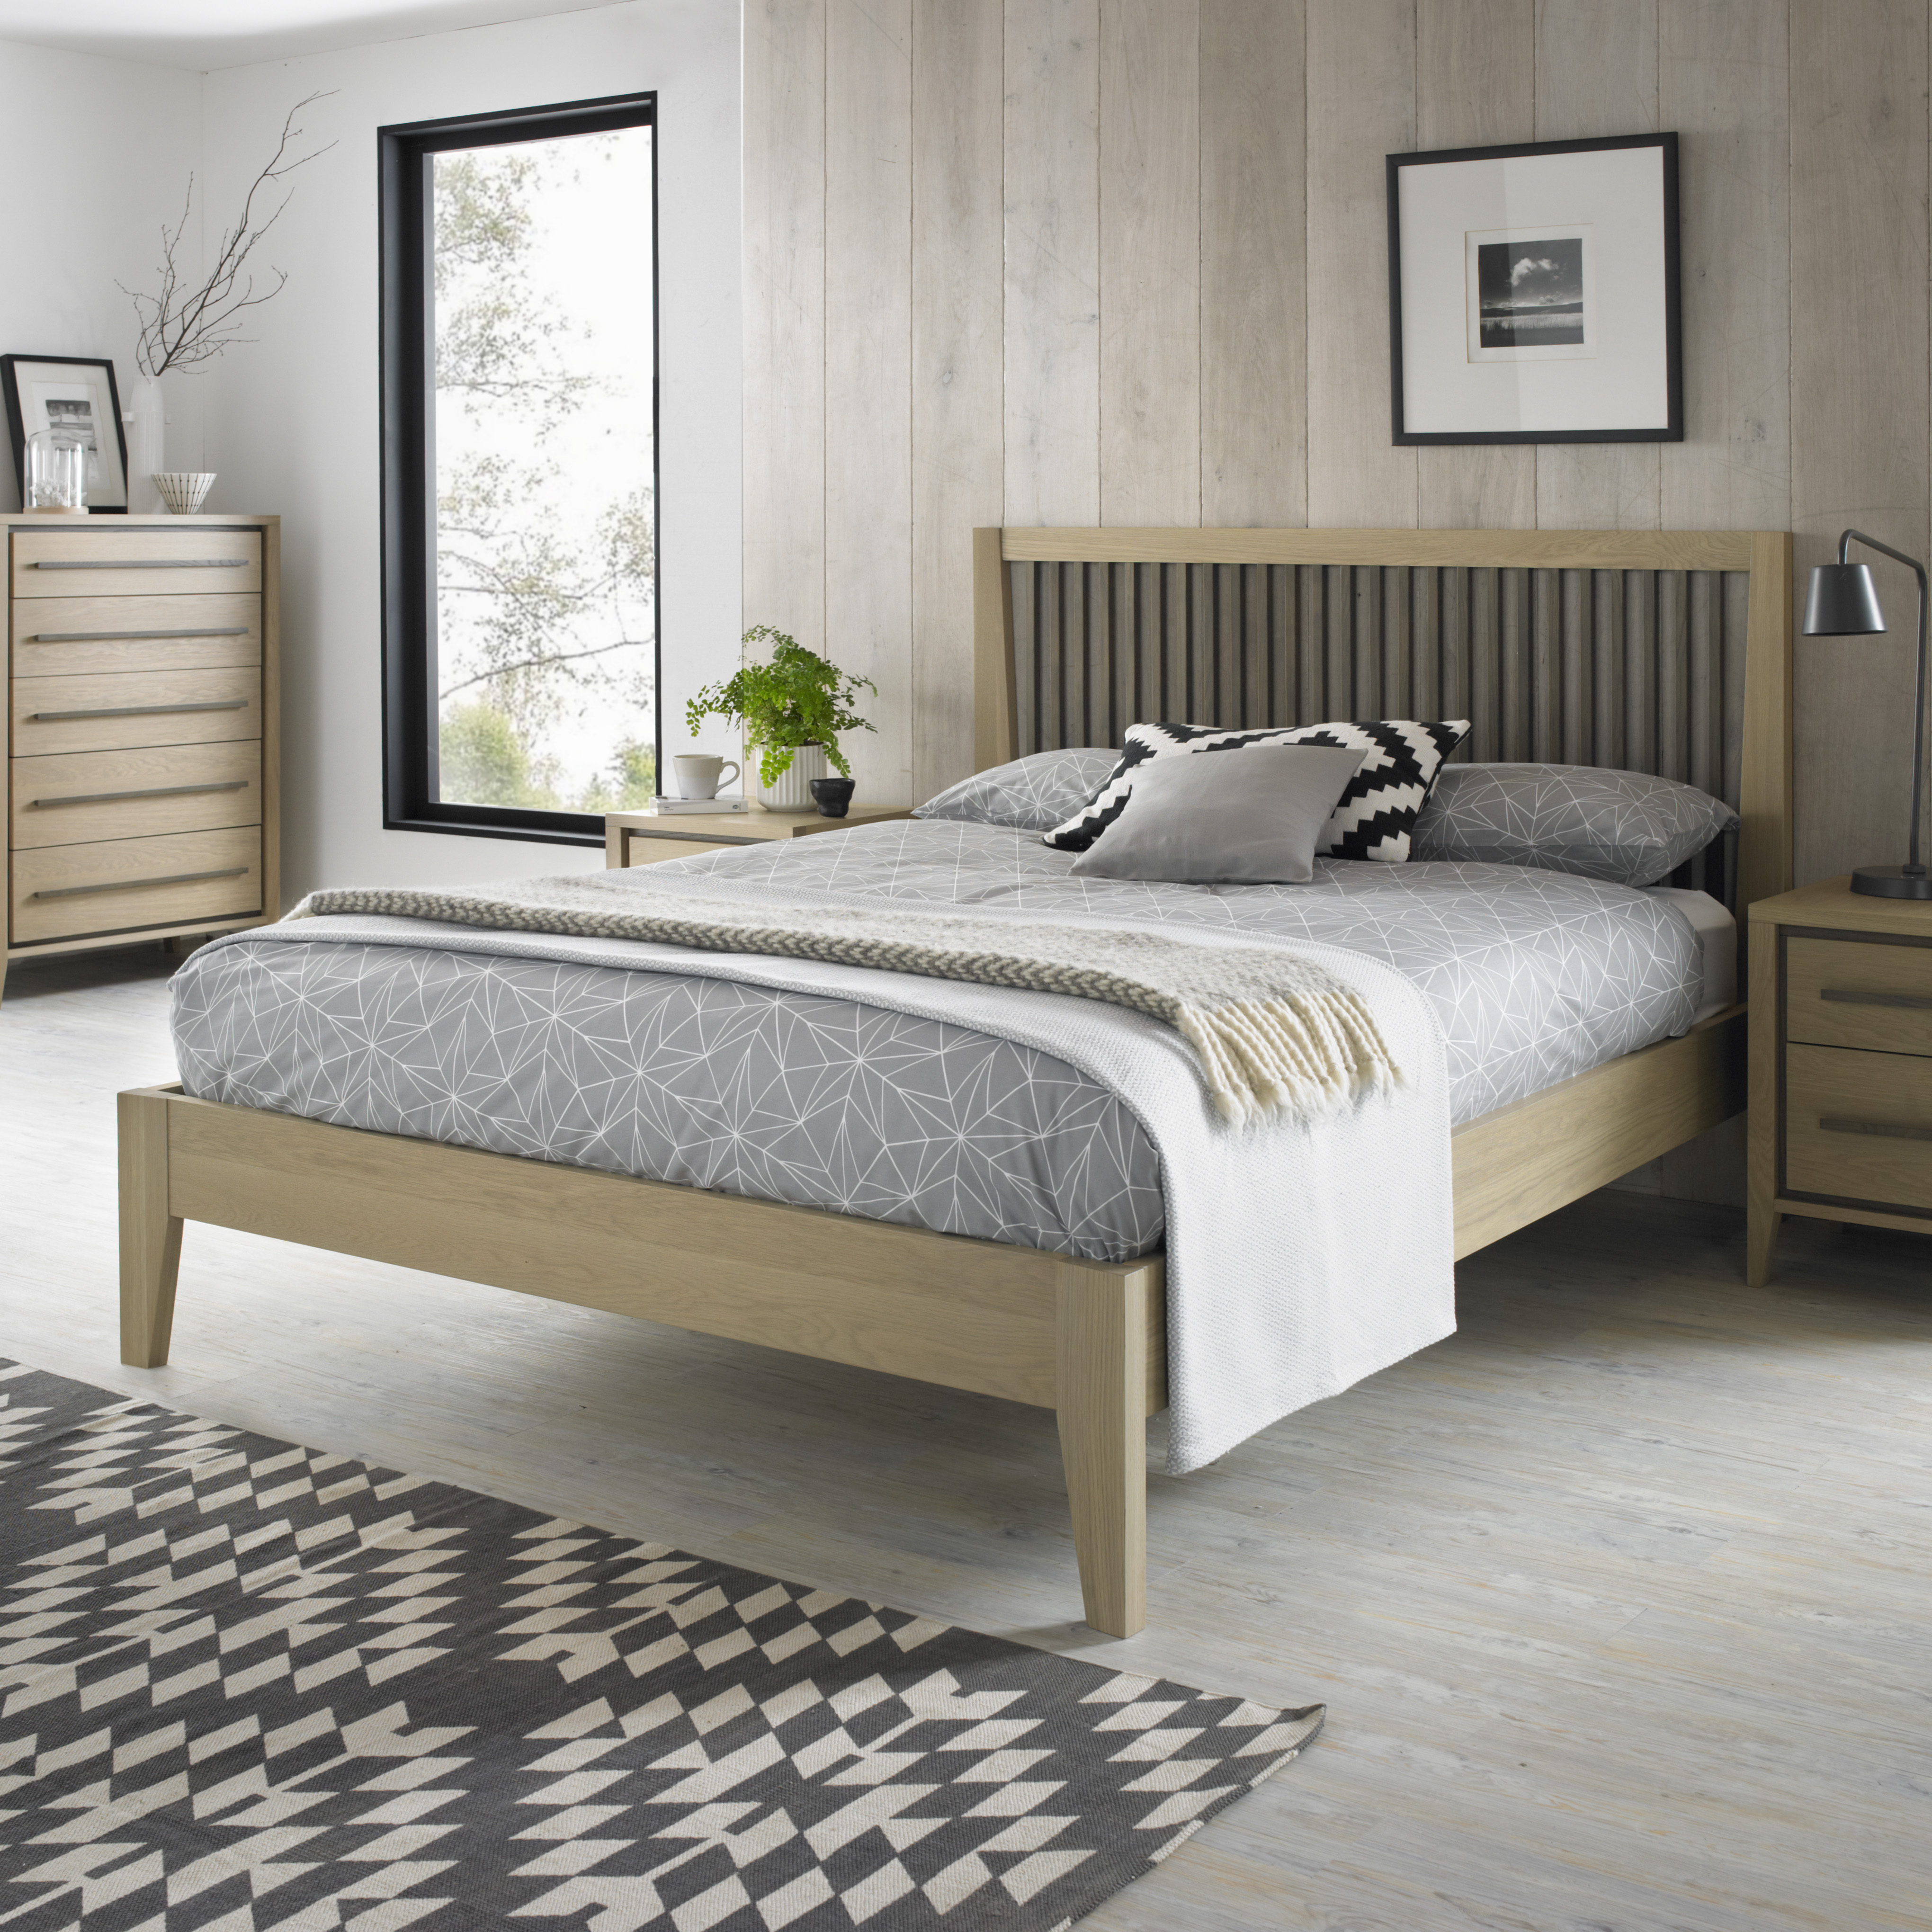 Lombardy Bed Frame